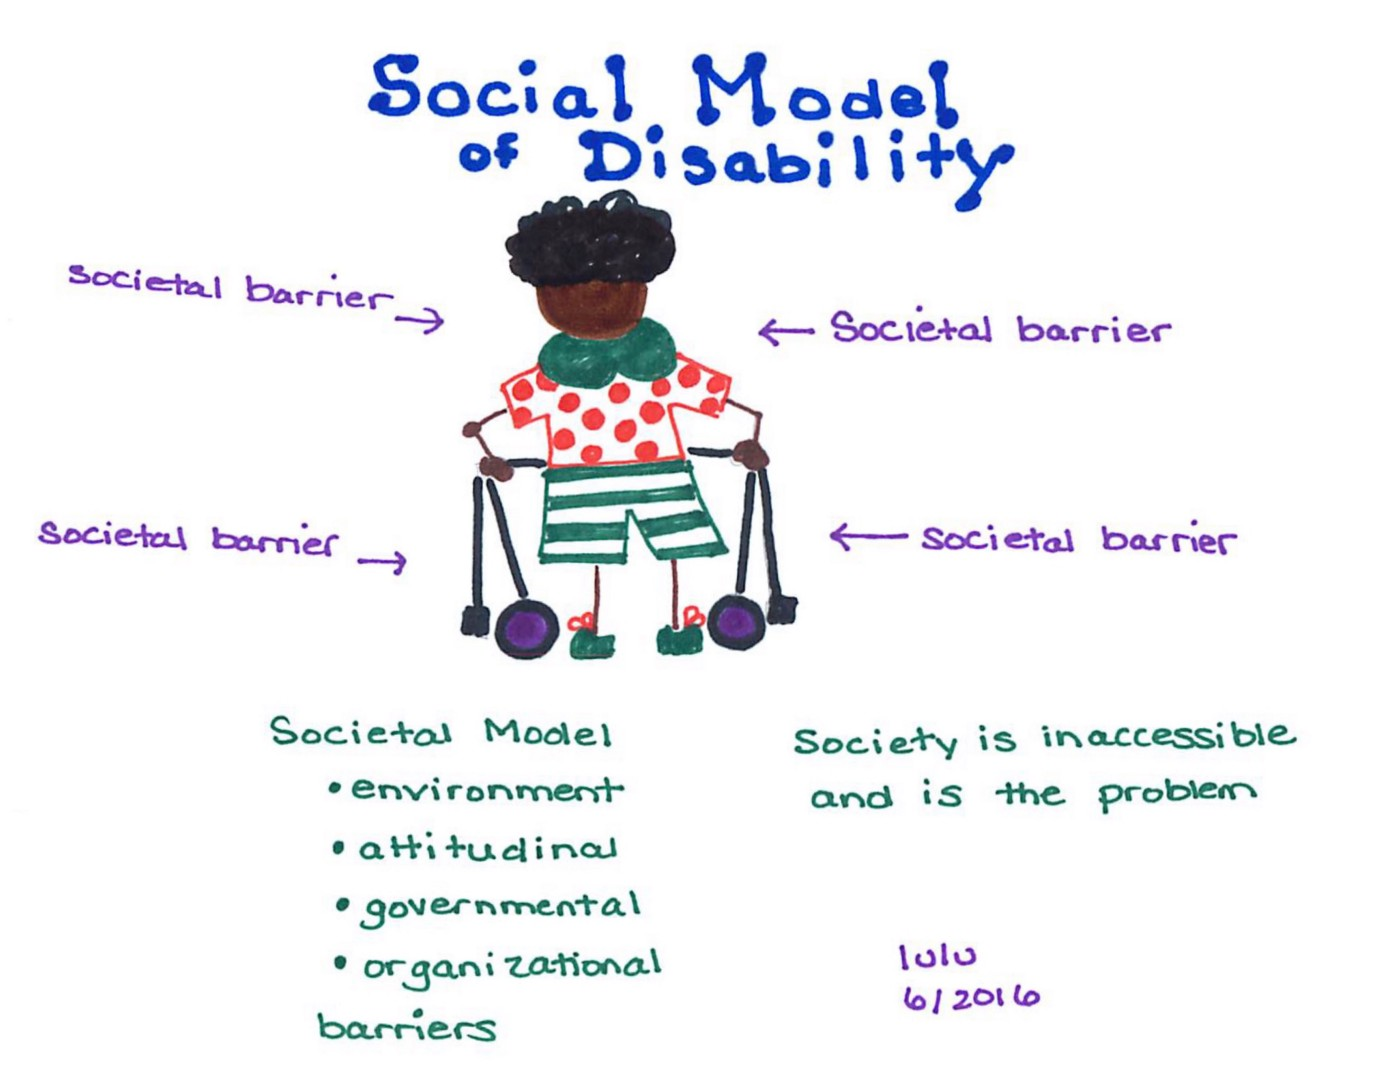 """An image with a disabled figure at the center making use of a walking aid. There are labels identifying societal barriers. The societal model involves the environment, attitudes, government and organizations. The image also reads, """"Society is inaccessible and is the problem."""""""